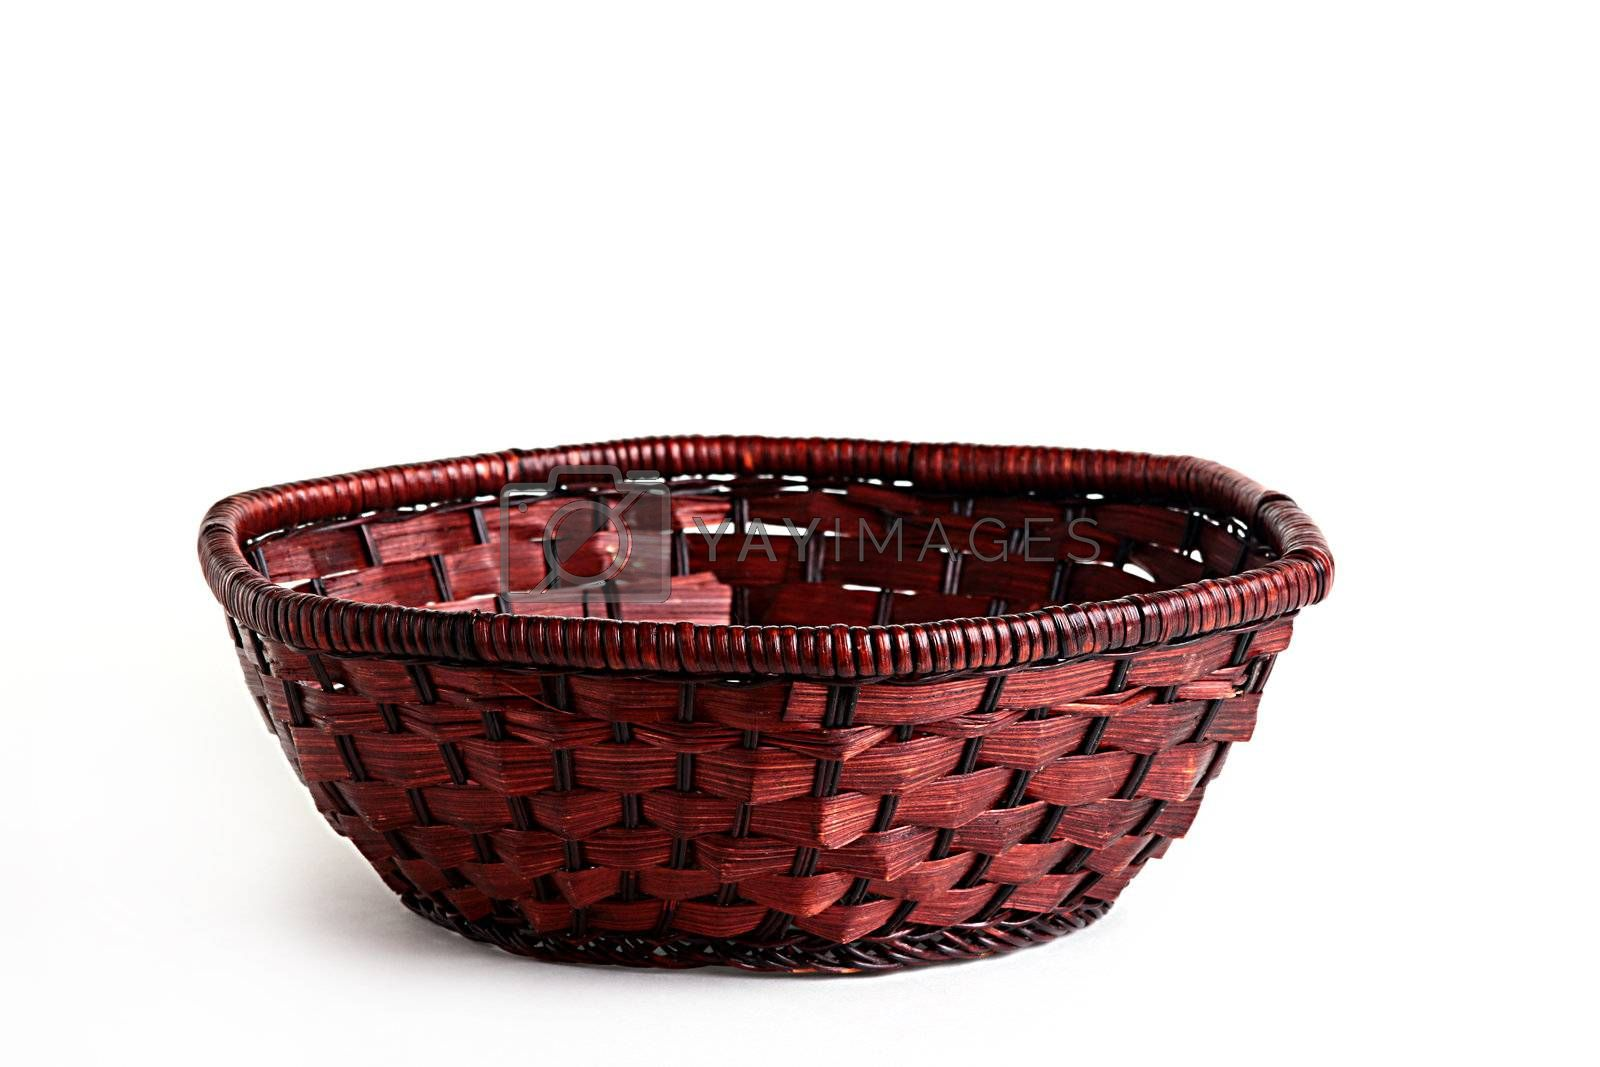 Basket weaved from rods for fruit and vegetables.